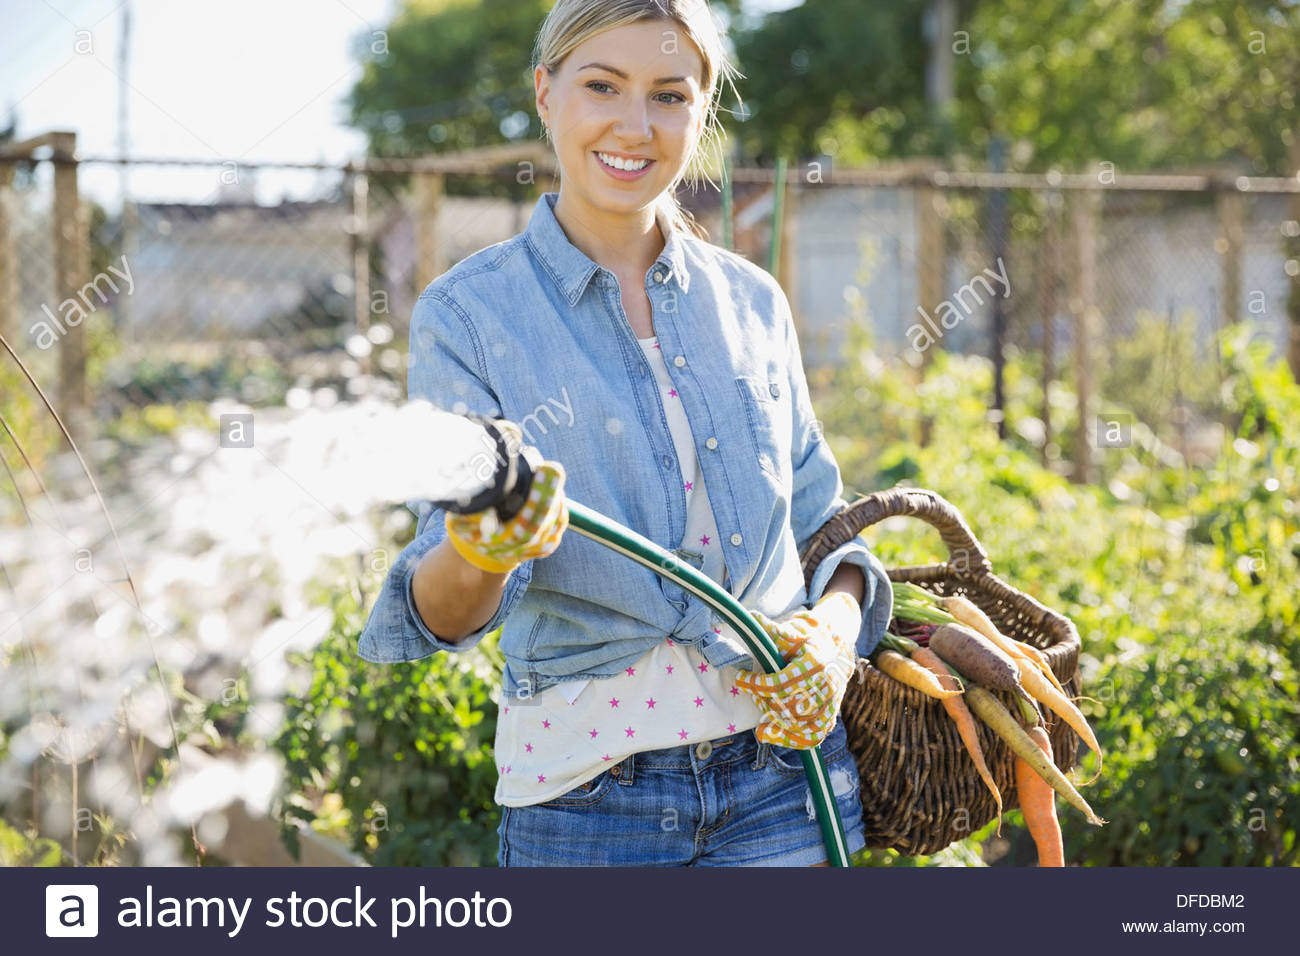 Woman watering plants with garden hose Stock Photo